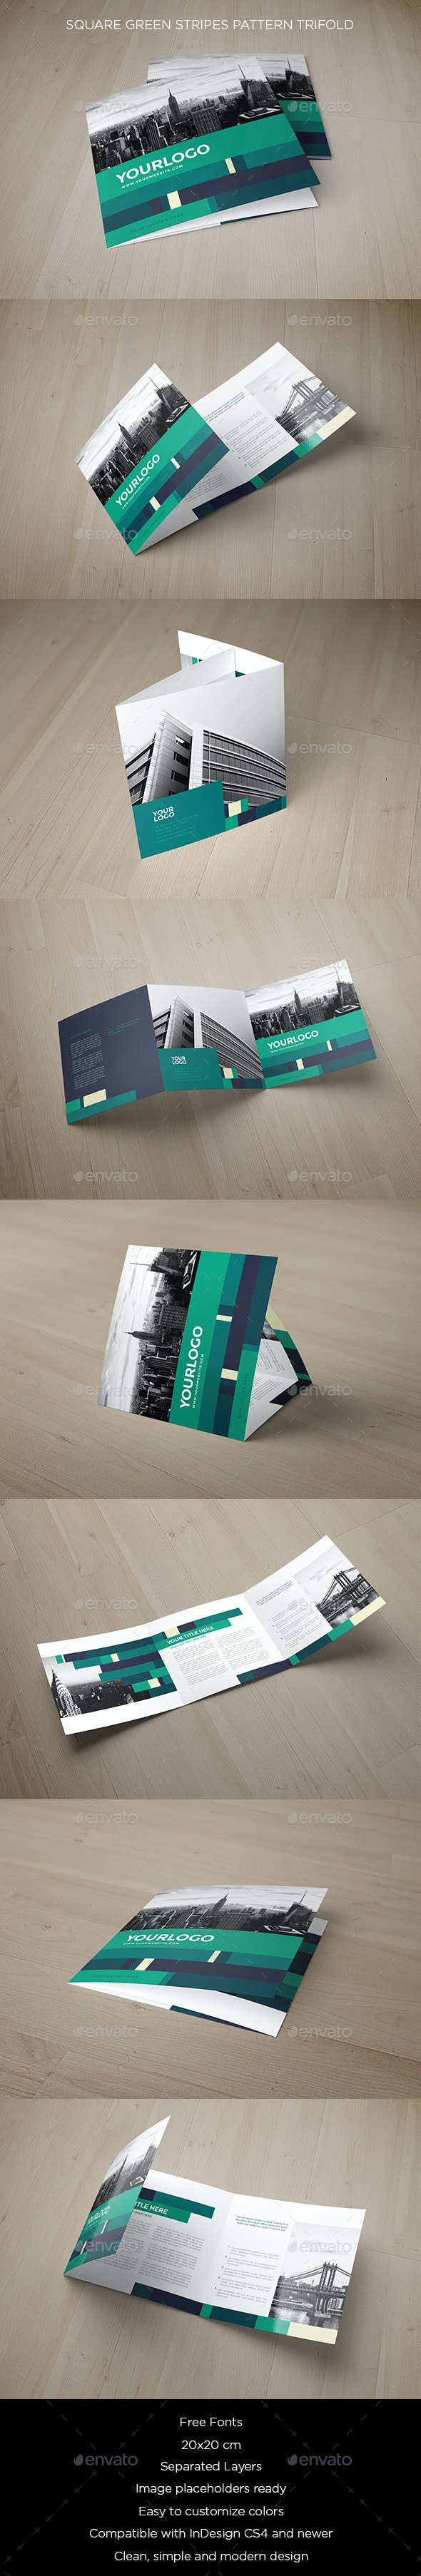 Square Green Stripes Pattern Trifold - Brochures Print Templates